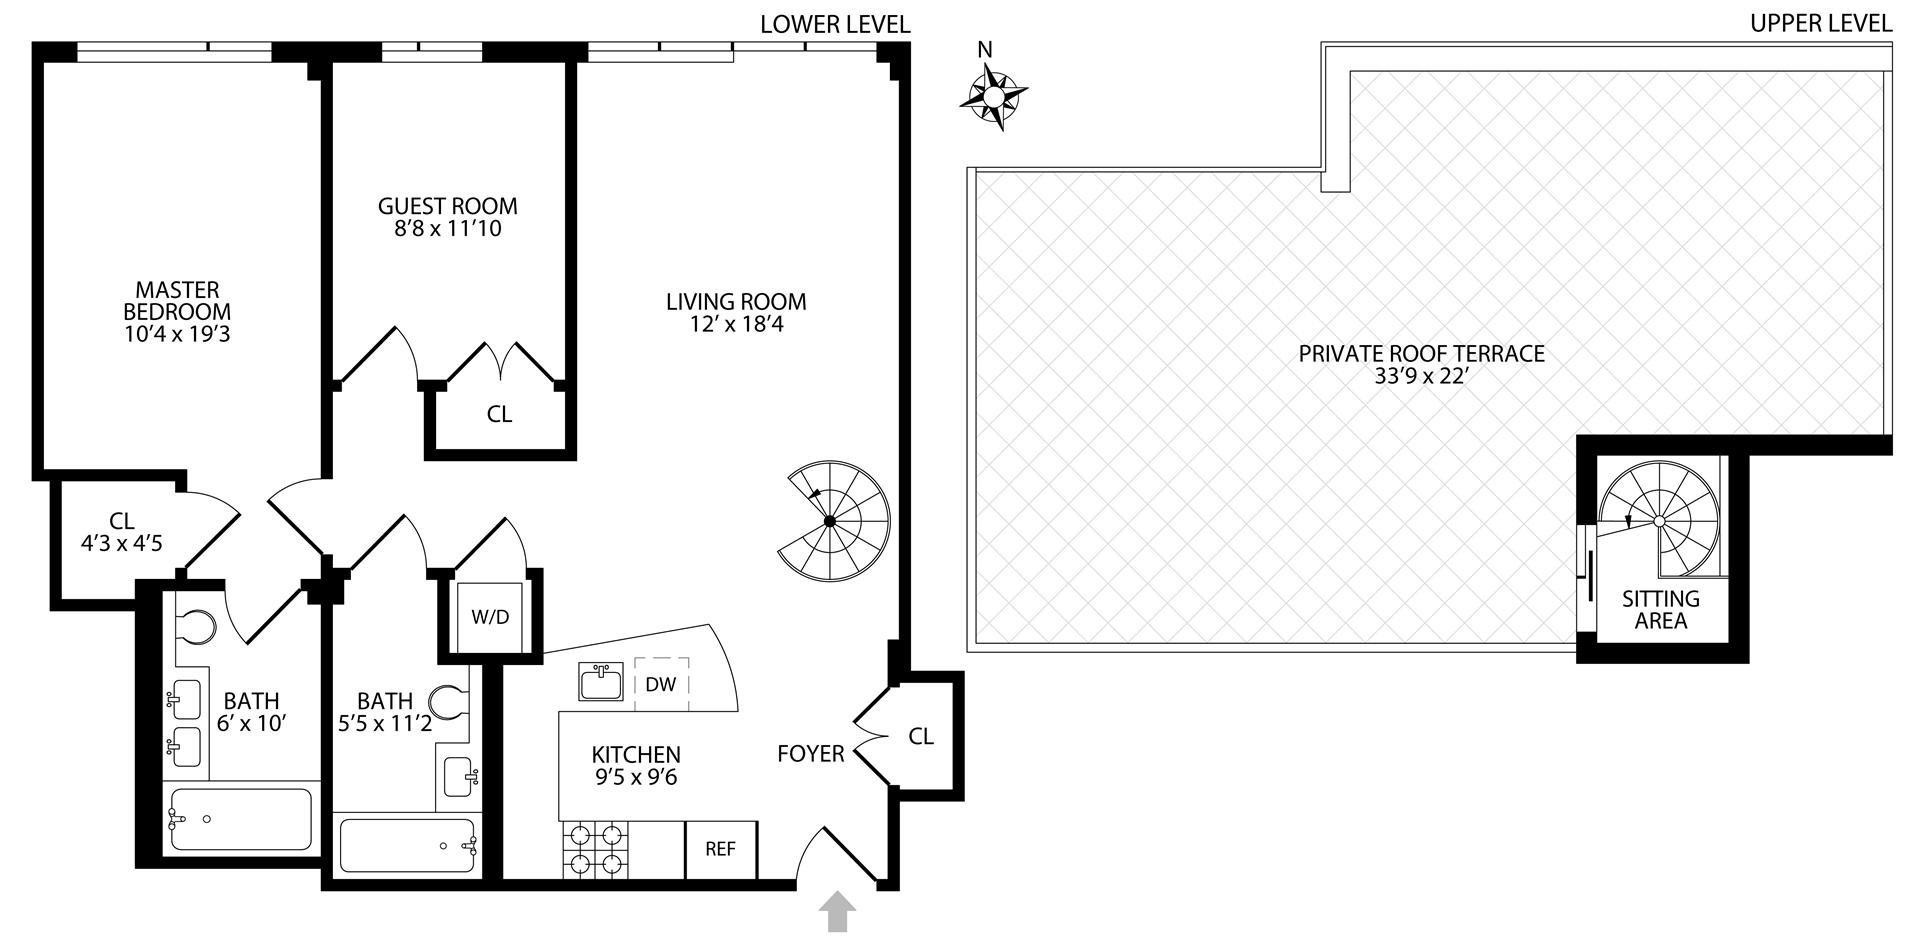 Floor plan of 46 South 2nd St, 4C - Williamsburg, New York